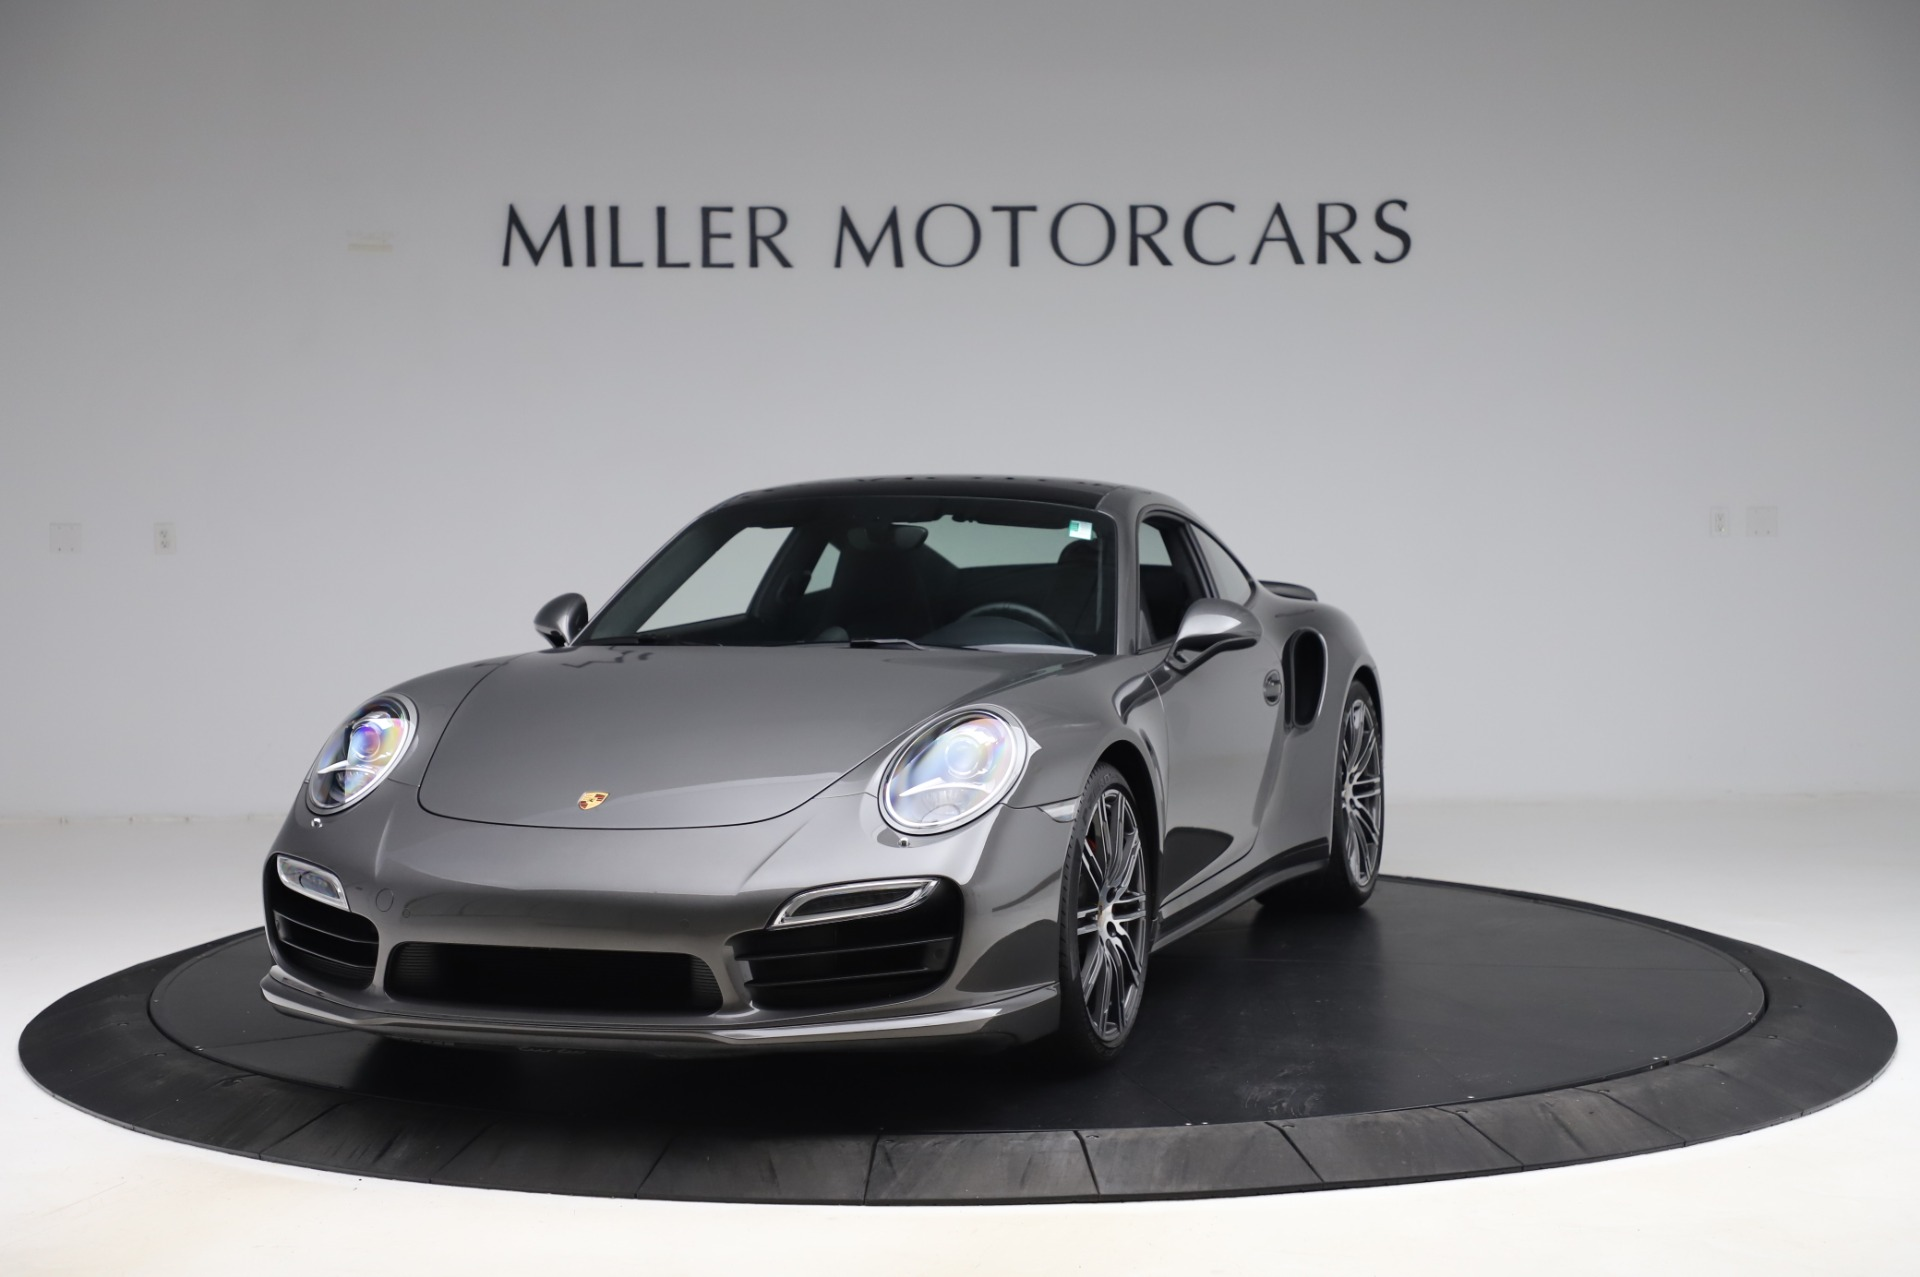 Used 2015 Porsche 911 Turbo for sale $123,900 at Aston Martin of Greenwich in Greenwich CT 06830 1